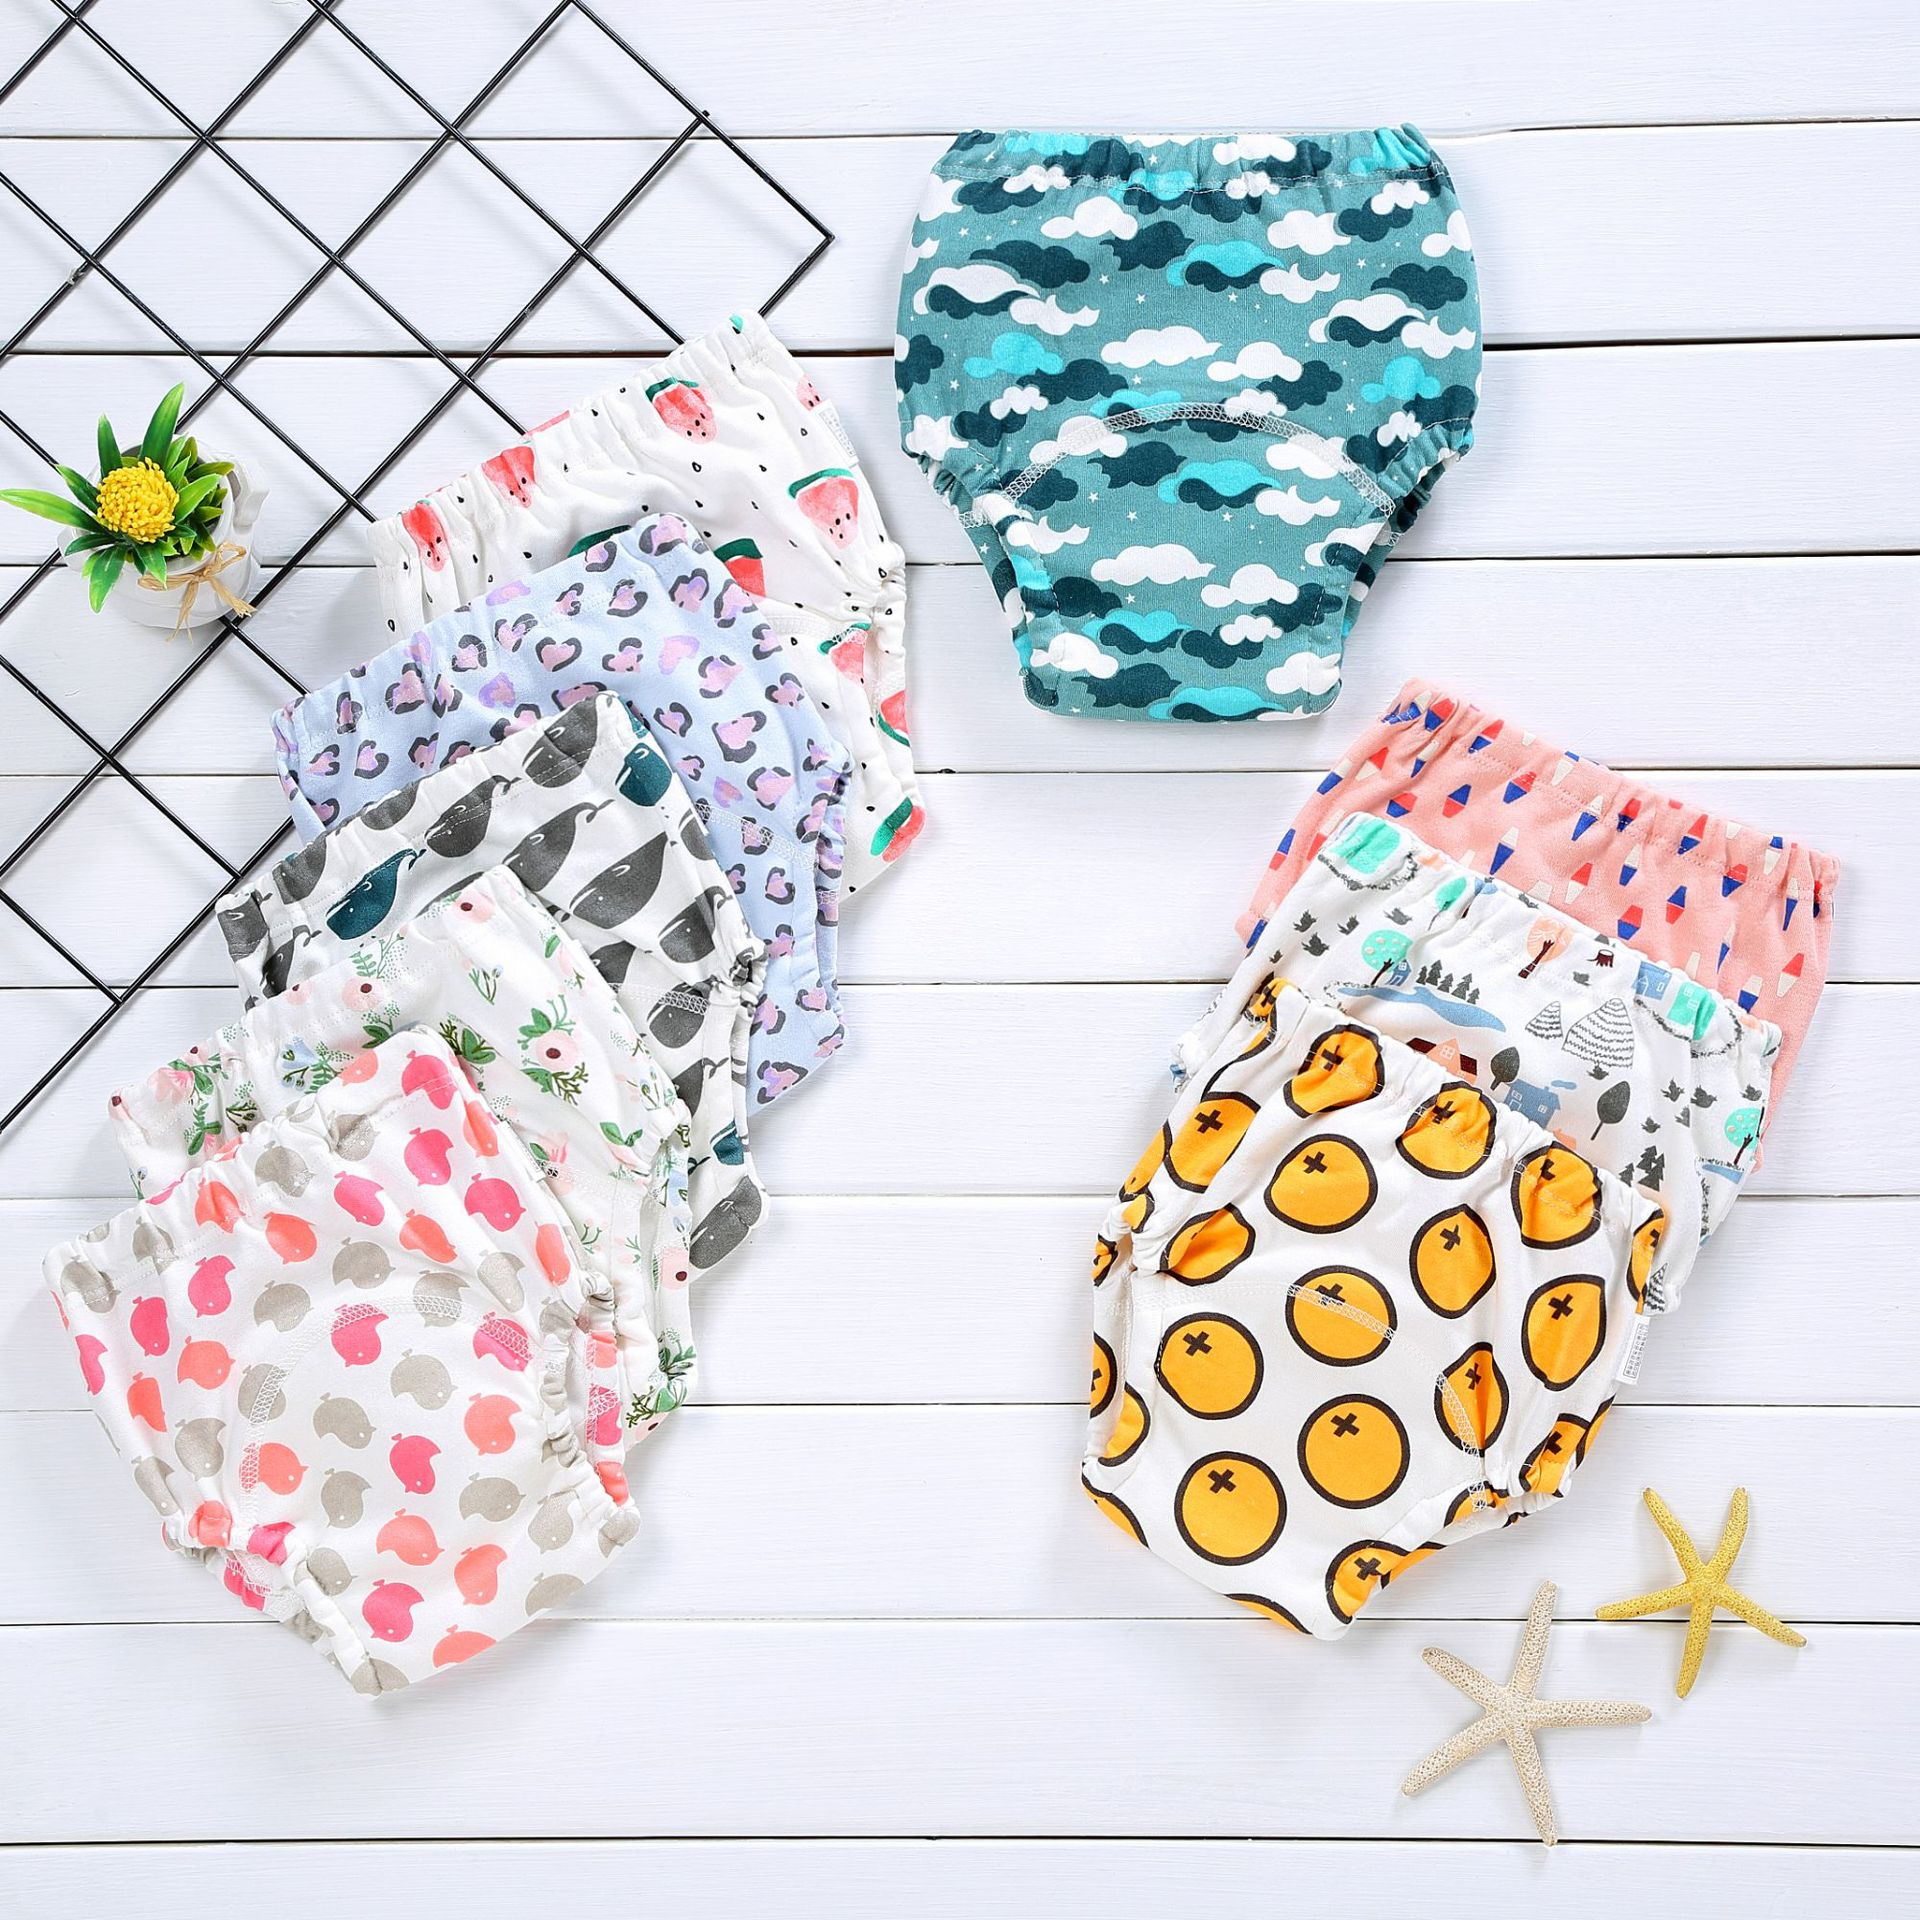 4 Layer Baby Diapers Reusable Nappies Cloth Diaper Washable Infants Children Baby Cotton Training Pants Panties Nappy Underwear